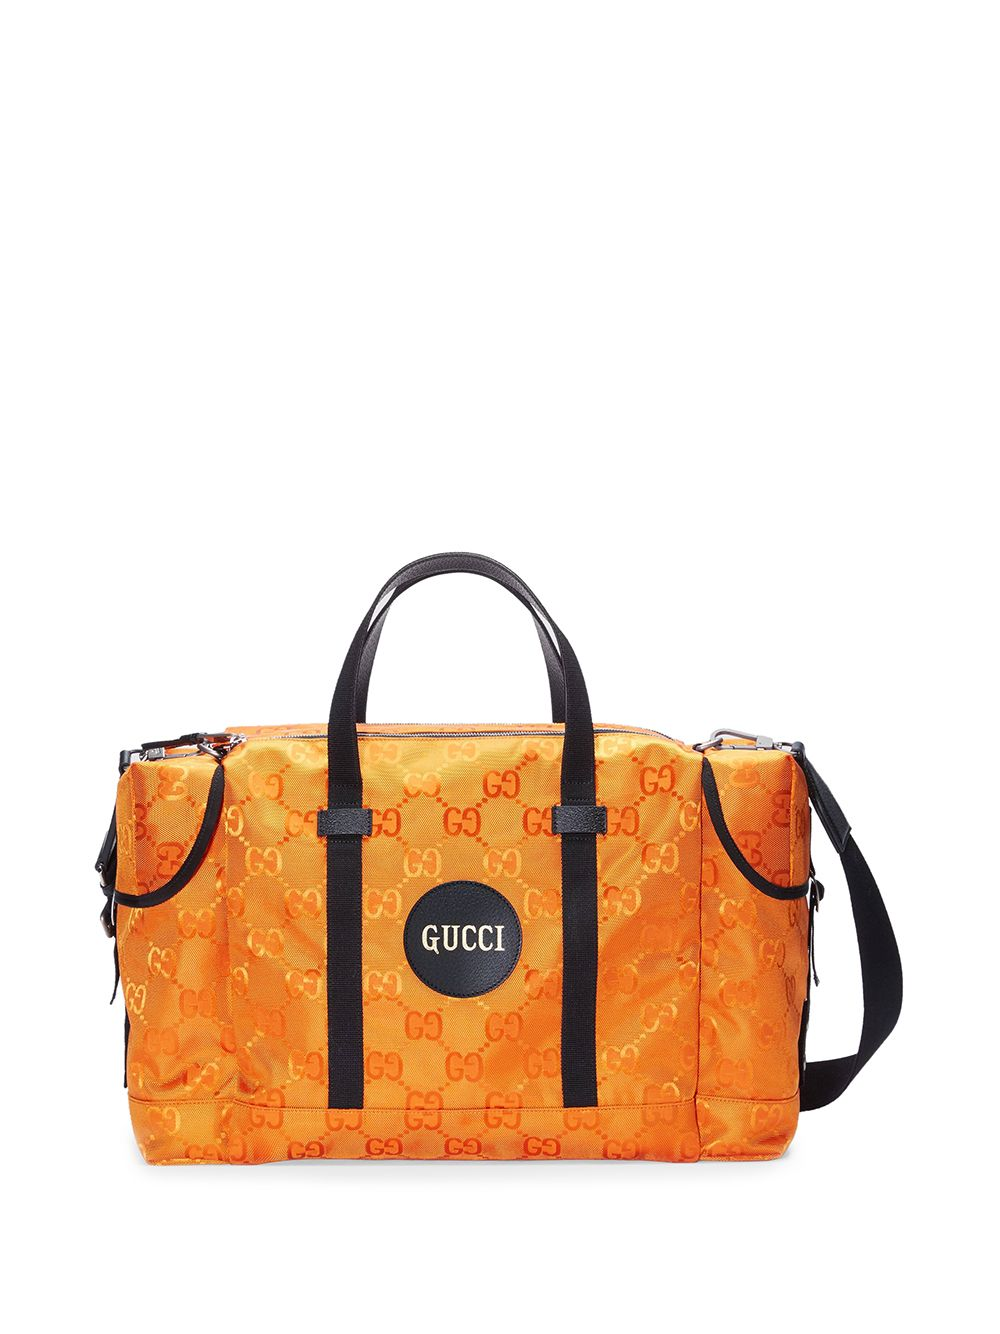 what are the best stylish luxury weekender and duffle bags for a weekend escape?